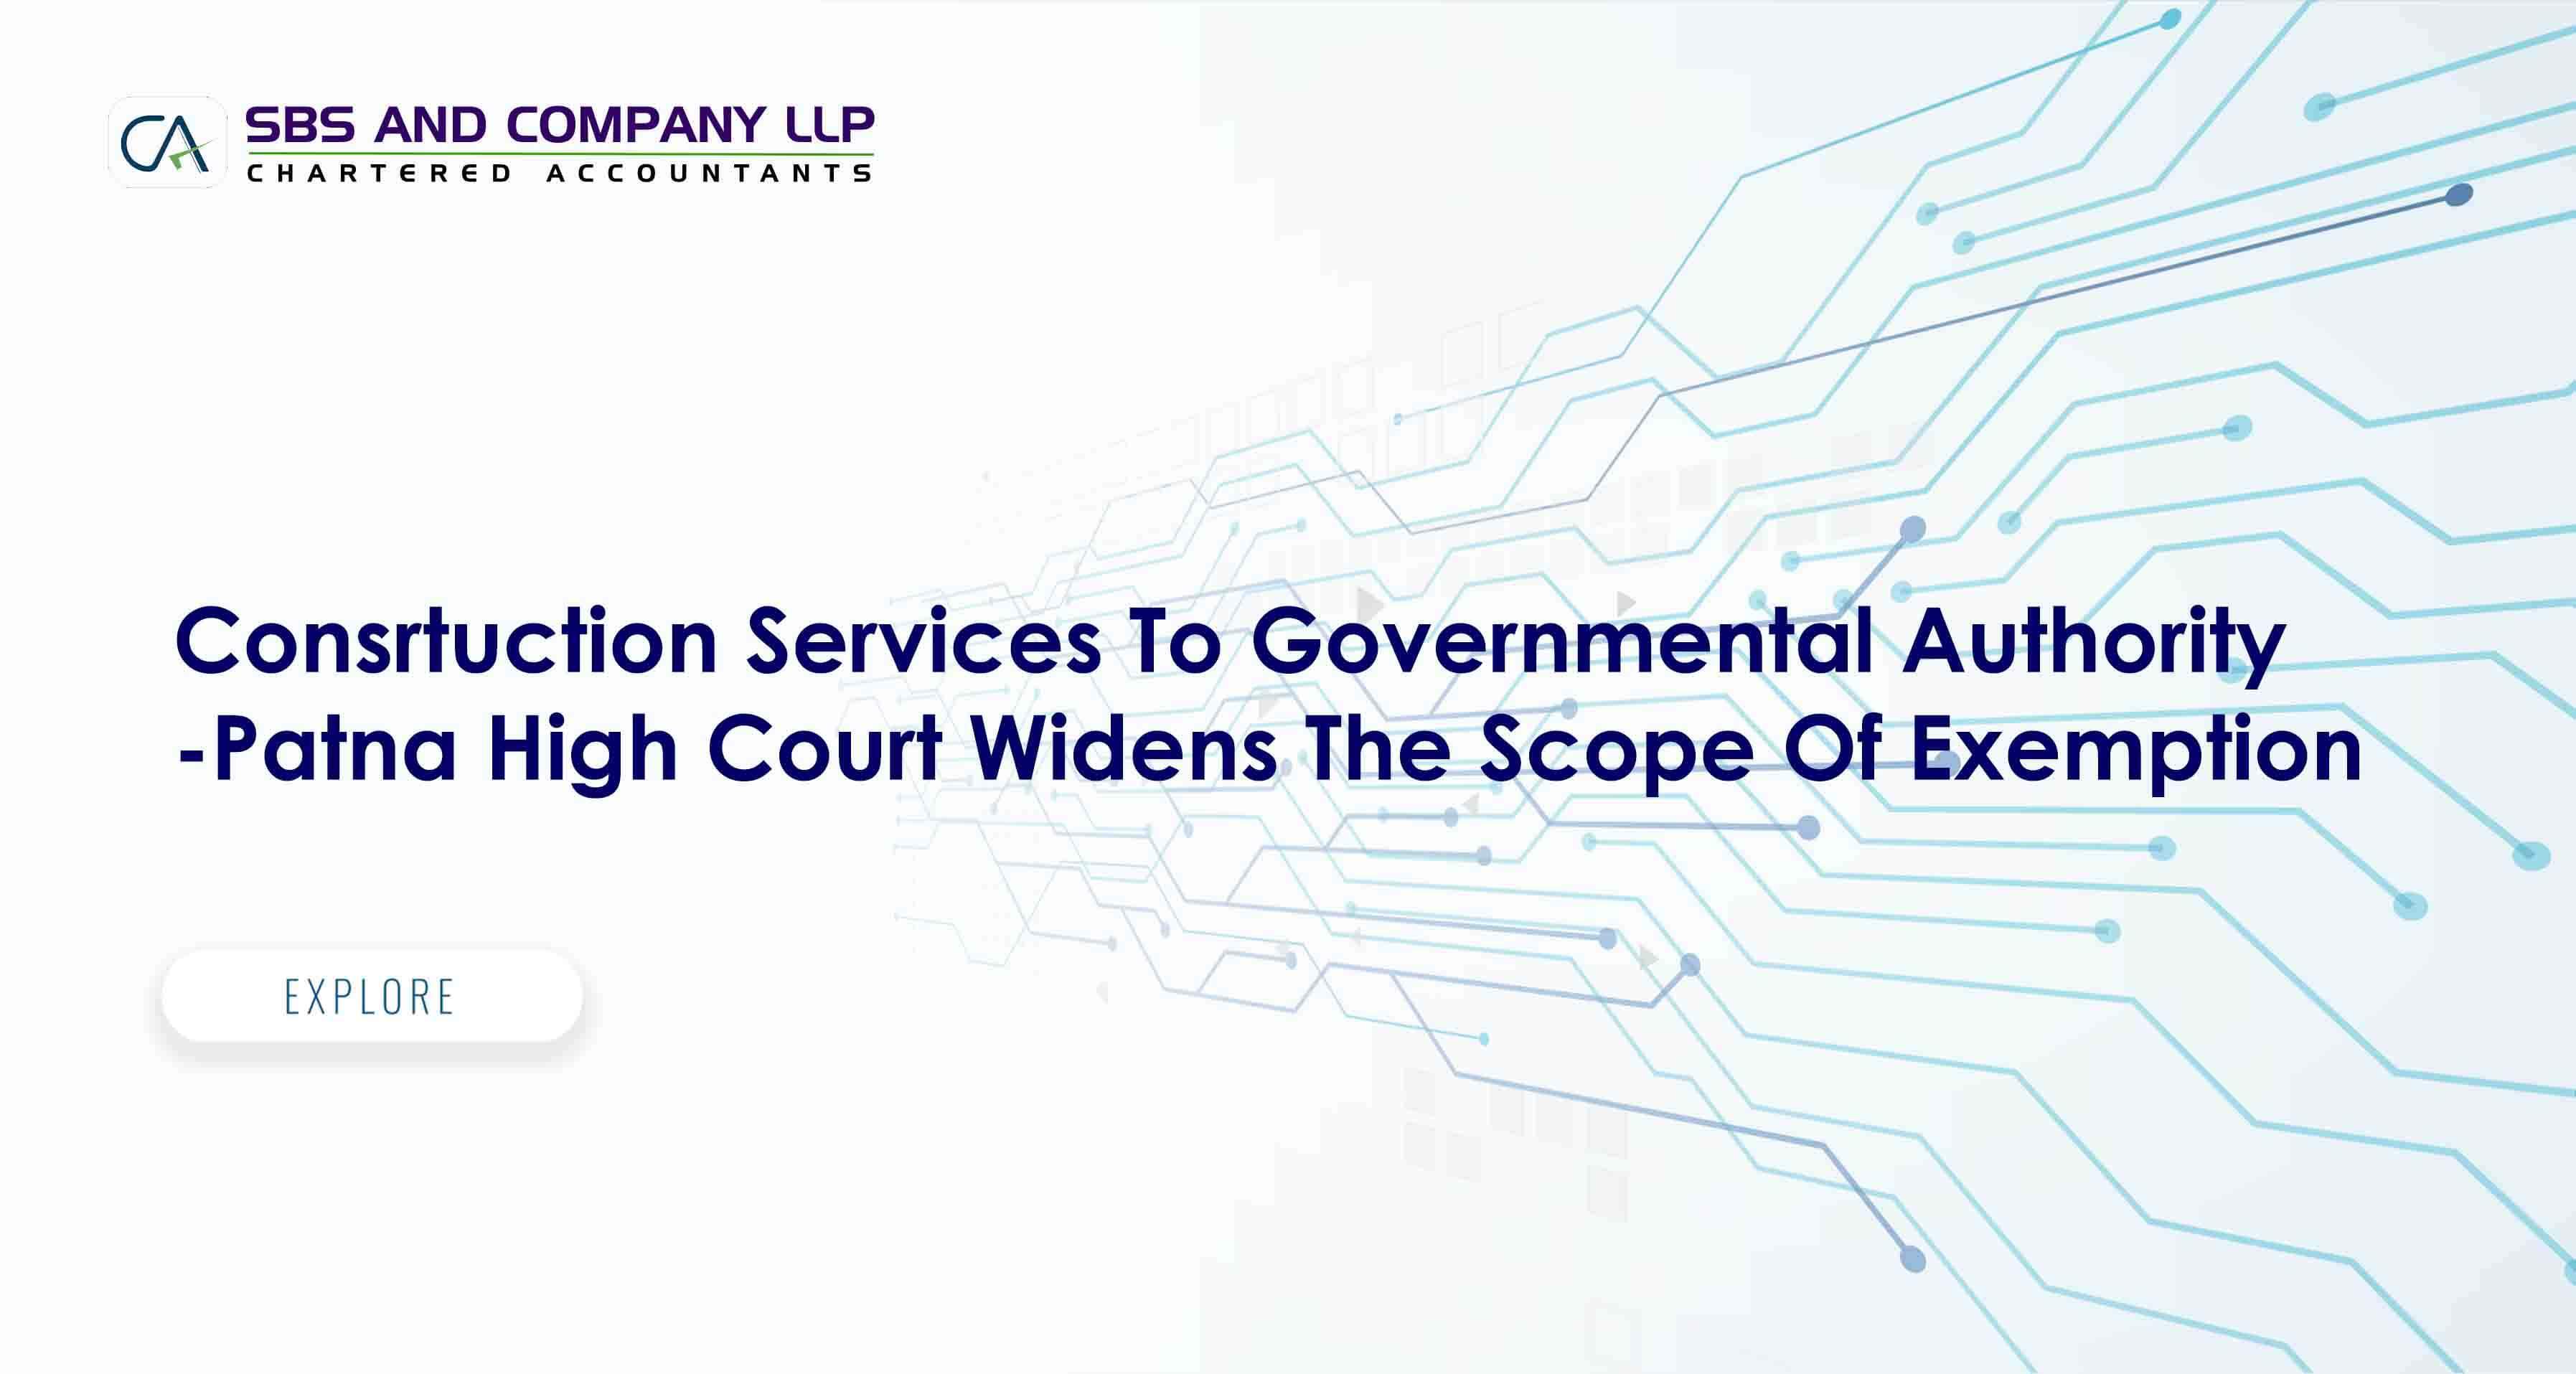 Consrtuction Services To GovernmentalAuthority-Patna High Court Widens The Scope Of Exemption